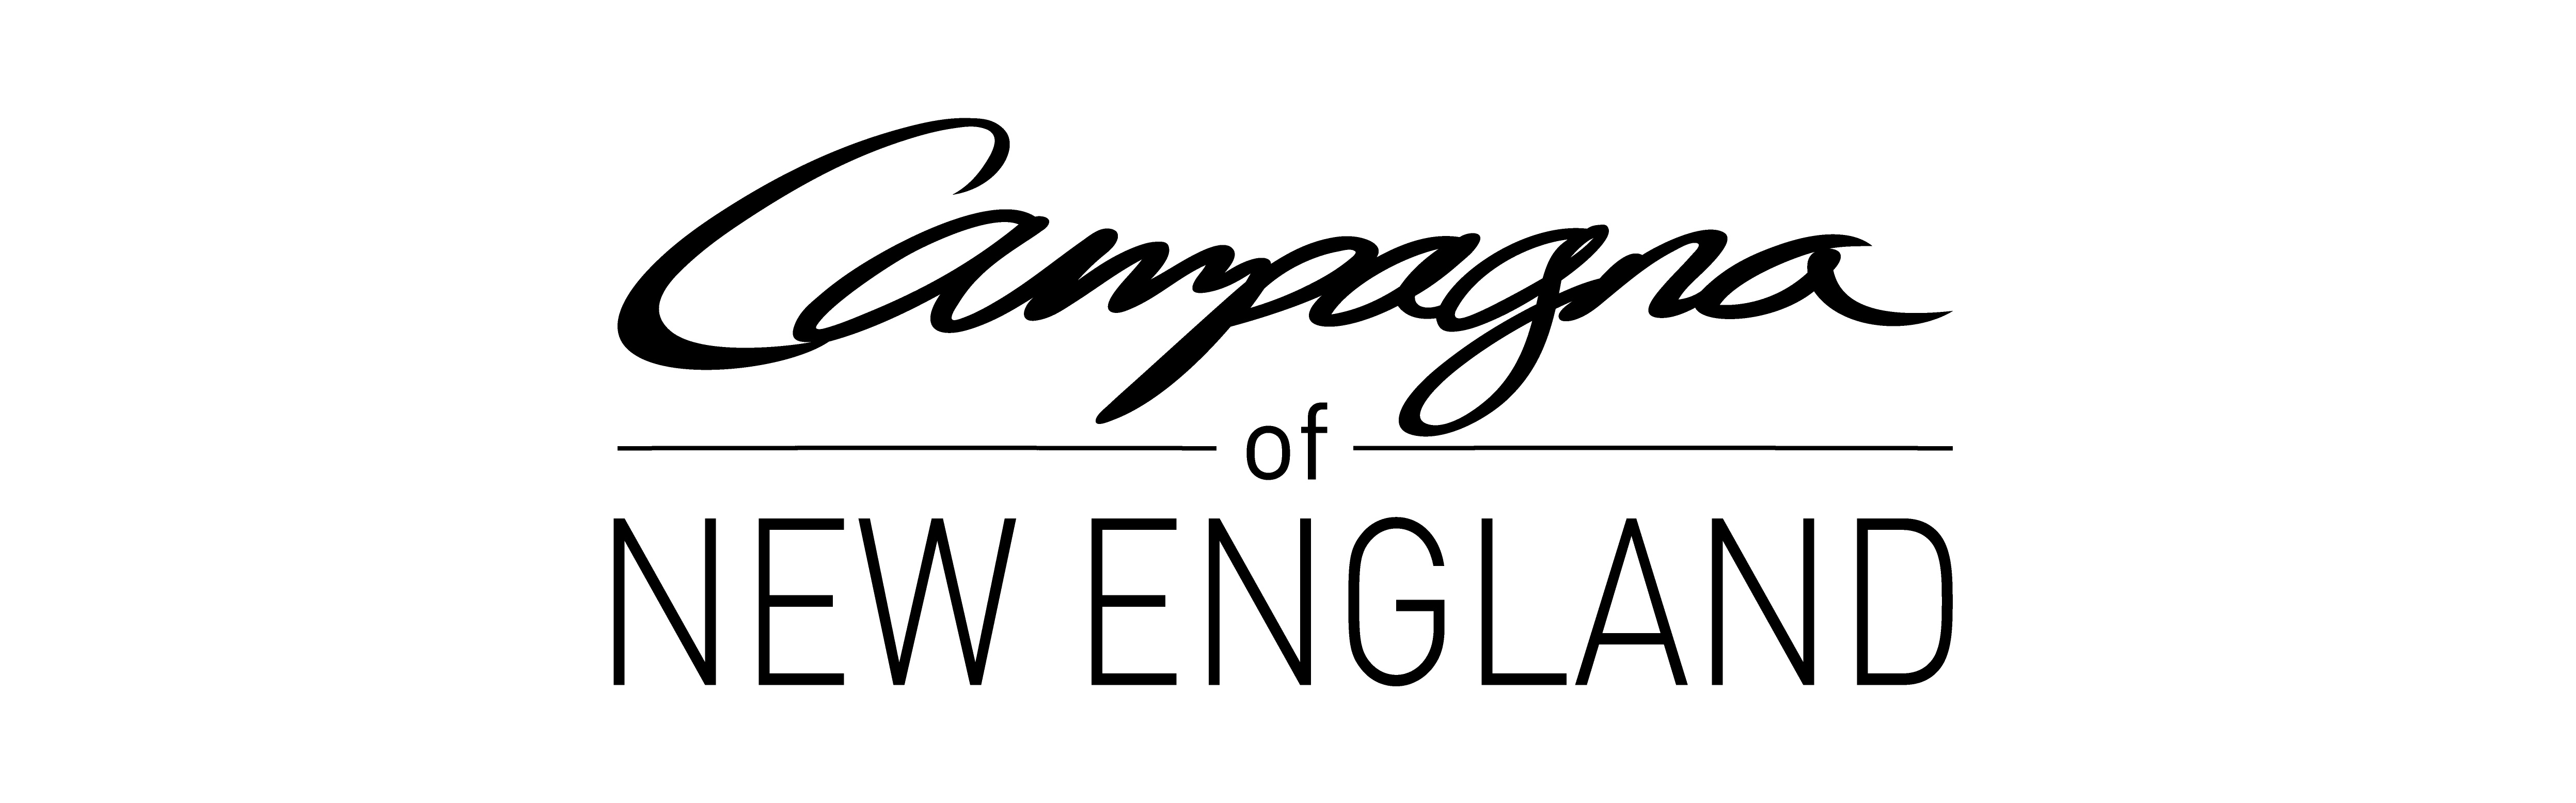 Signature-Campagna-NEW-ENGLAND_2019